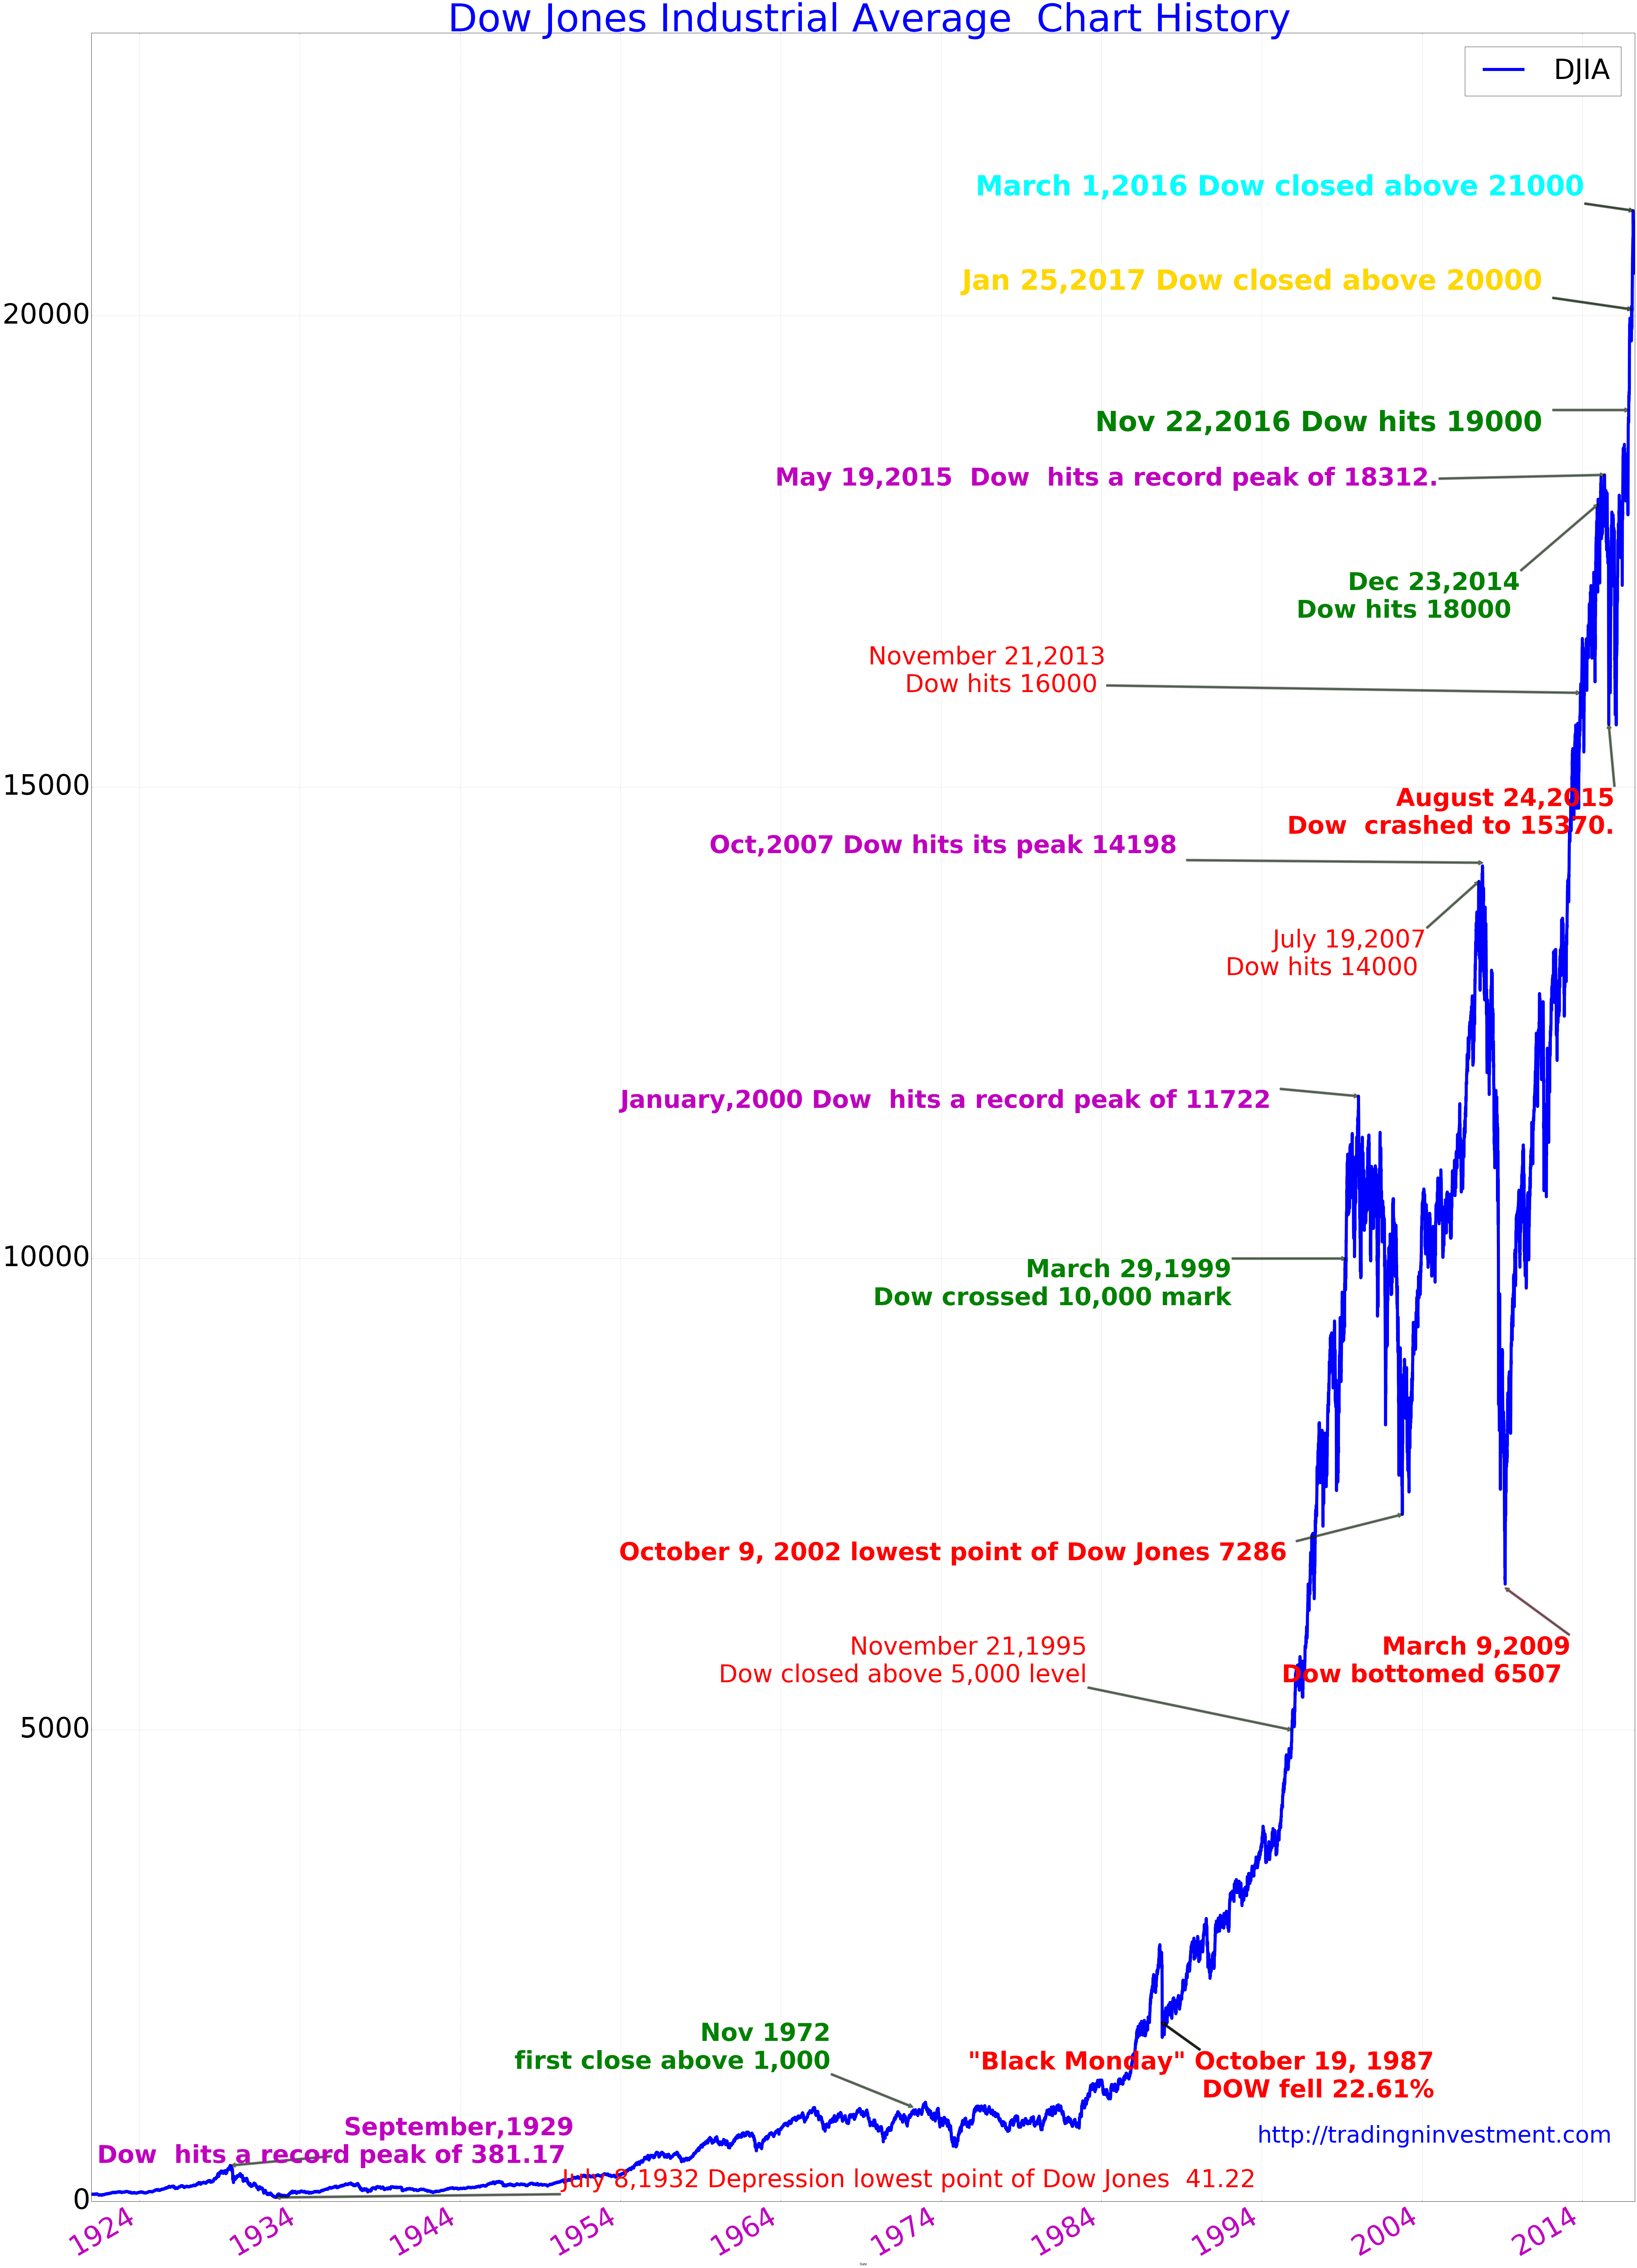 Pin By Csaba Balogh On Stock Charts In 2020 Dow Jones Dow Jones Industrial Average Dow